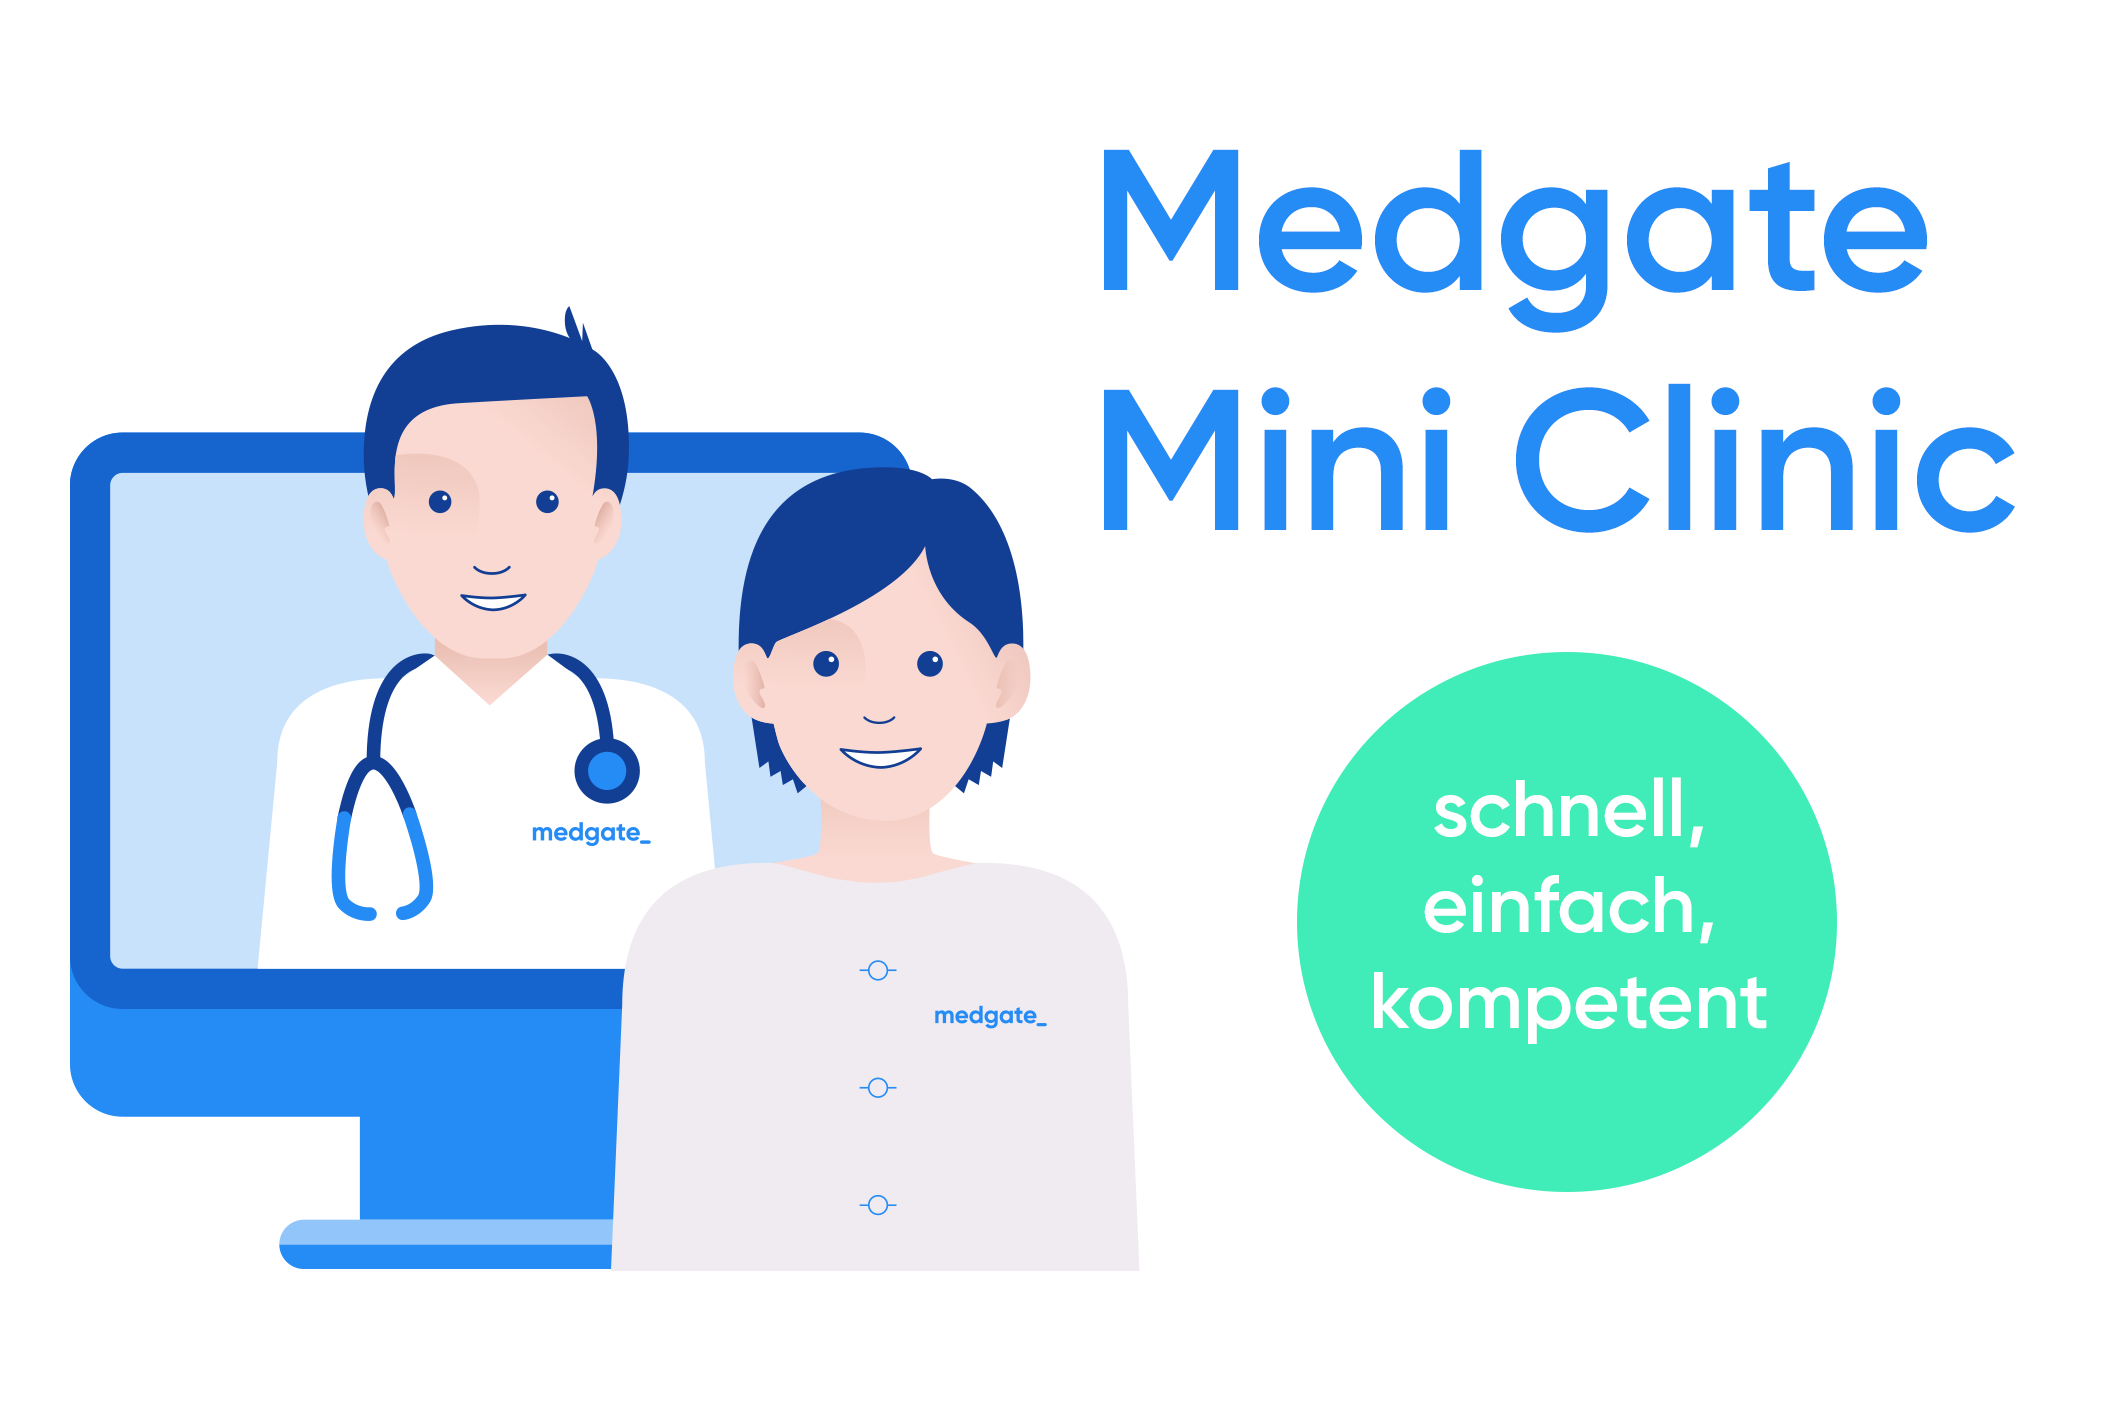 medgate_miniclinic_sub_2125x1415px_2.png